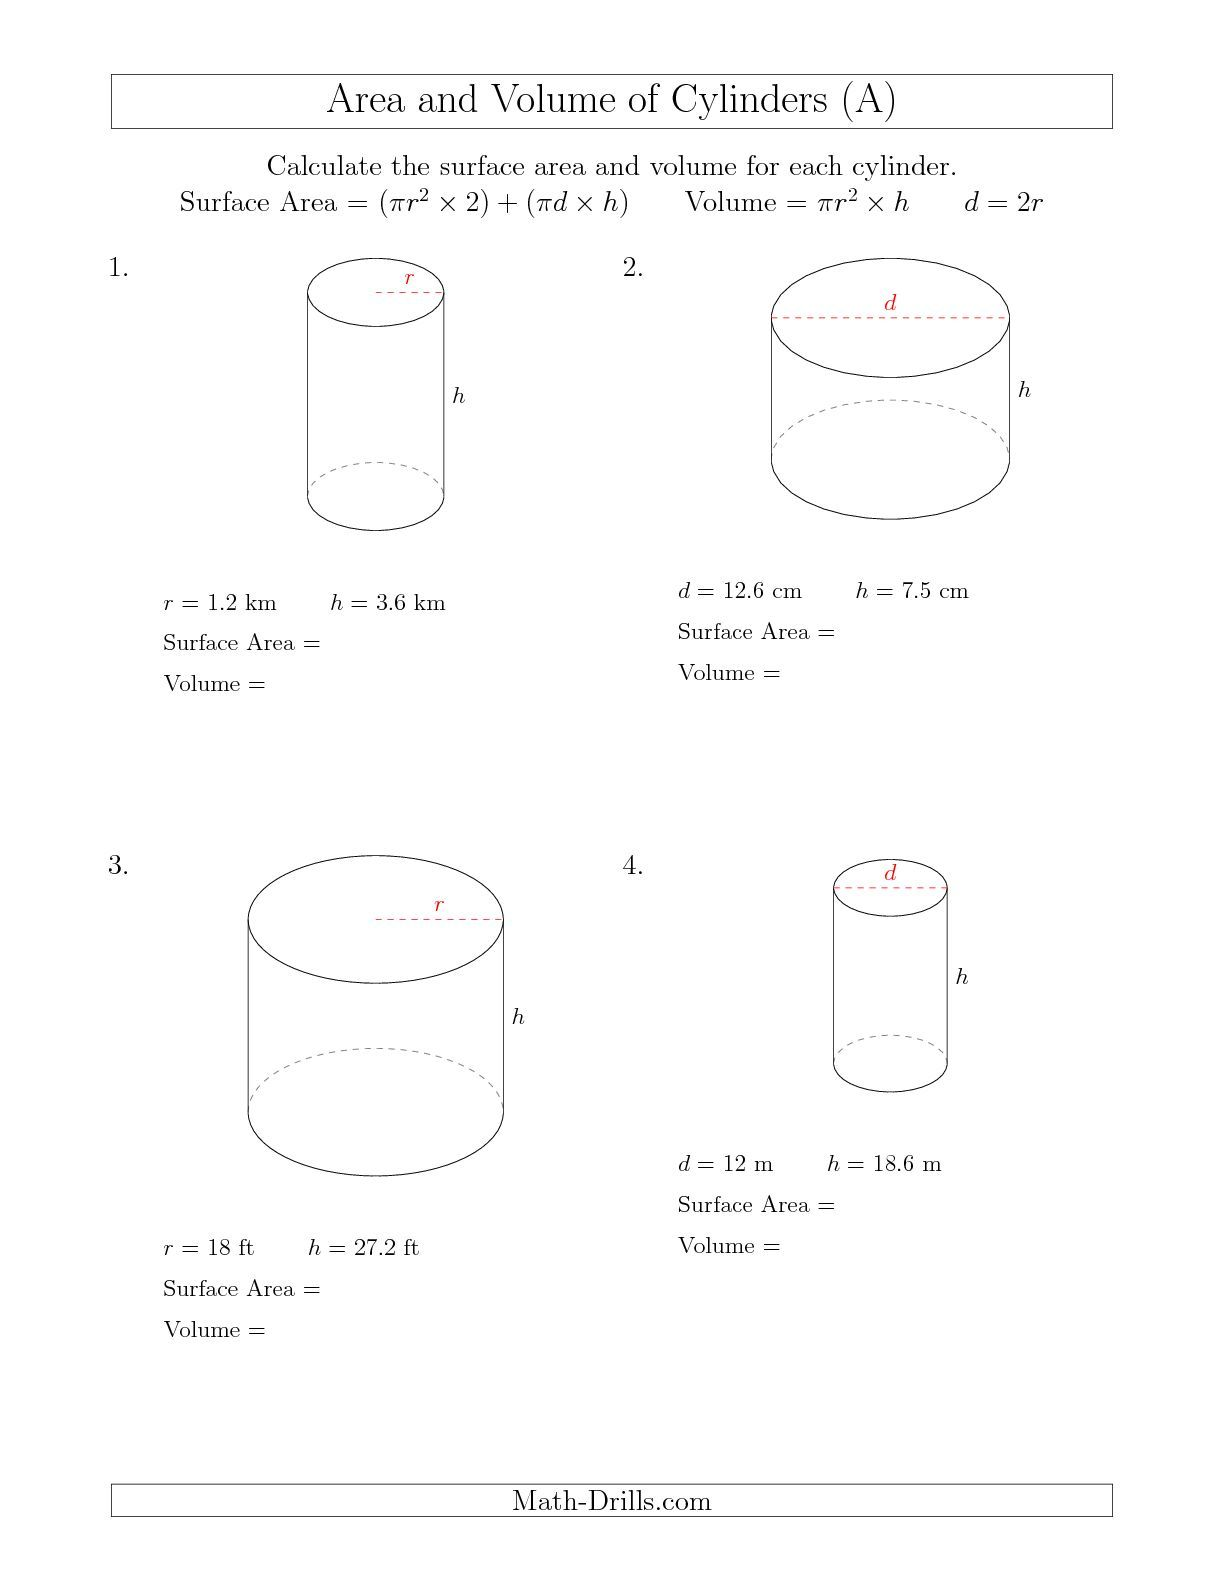 Worksheets Area And Volume Worksheets updated 2015 10 28 calculating surface area and volume of cylinders a math worksheet freemath